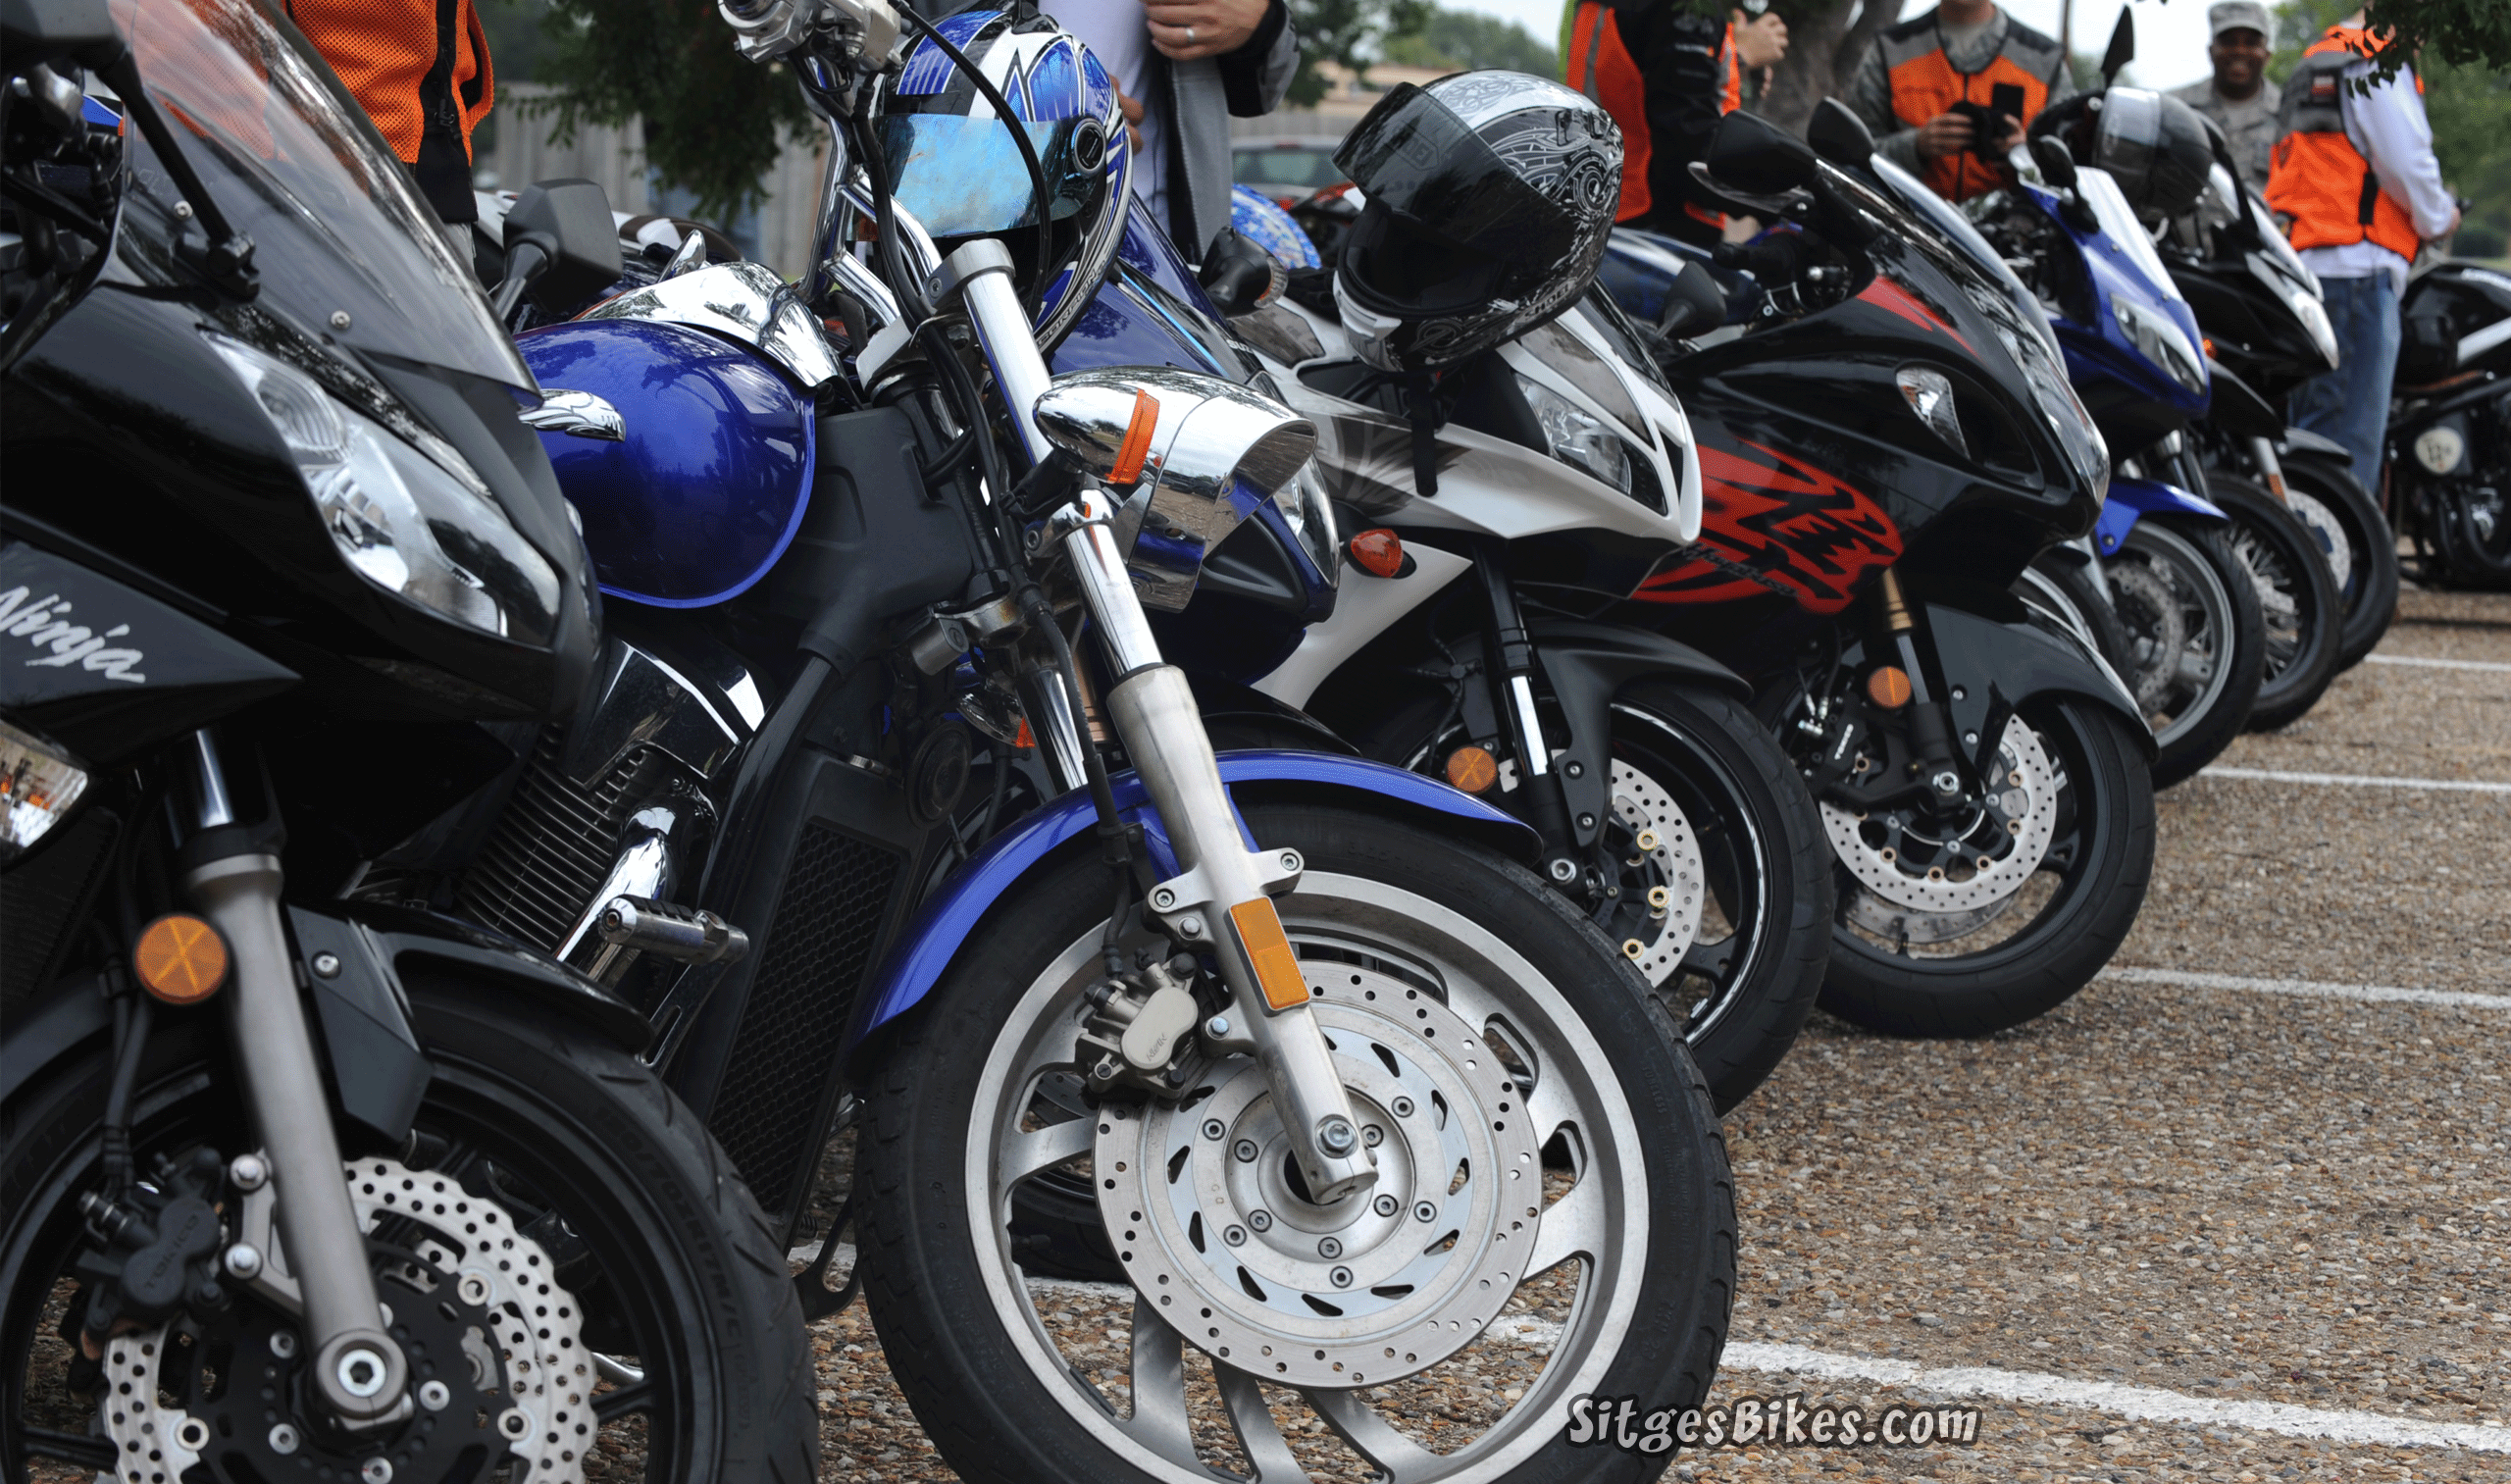 w-sitges-hire-rent-moped-moto